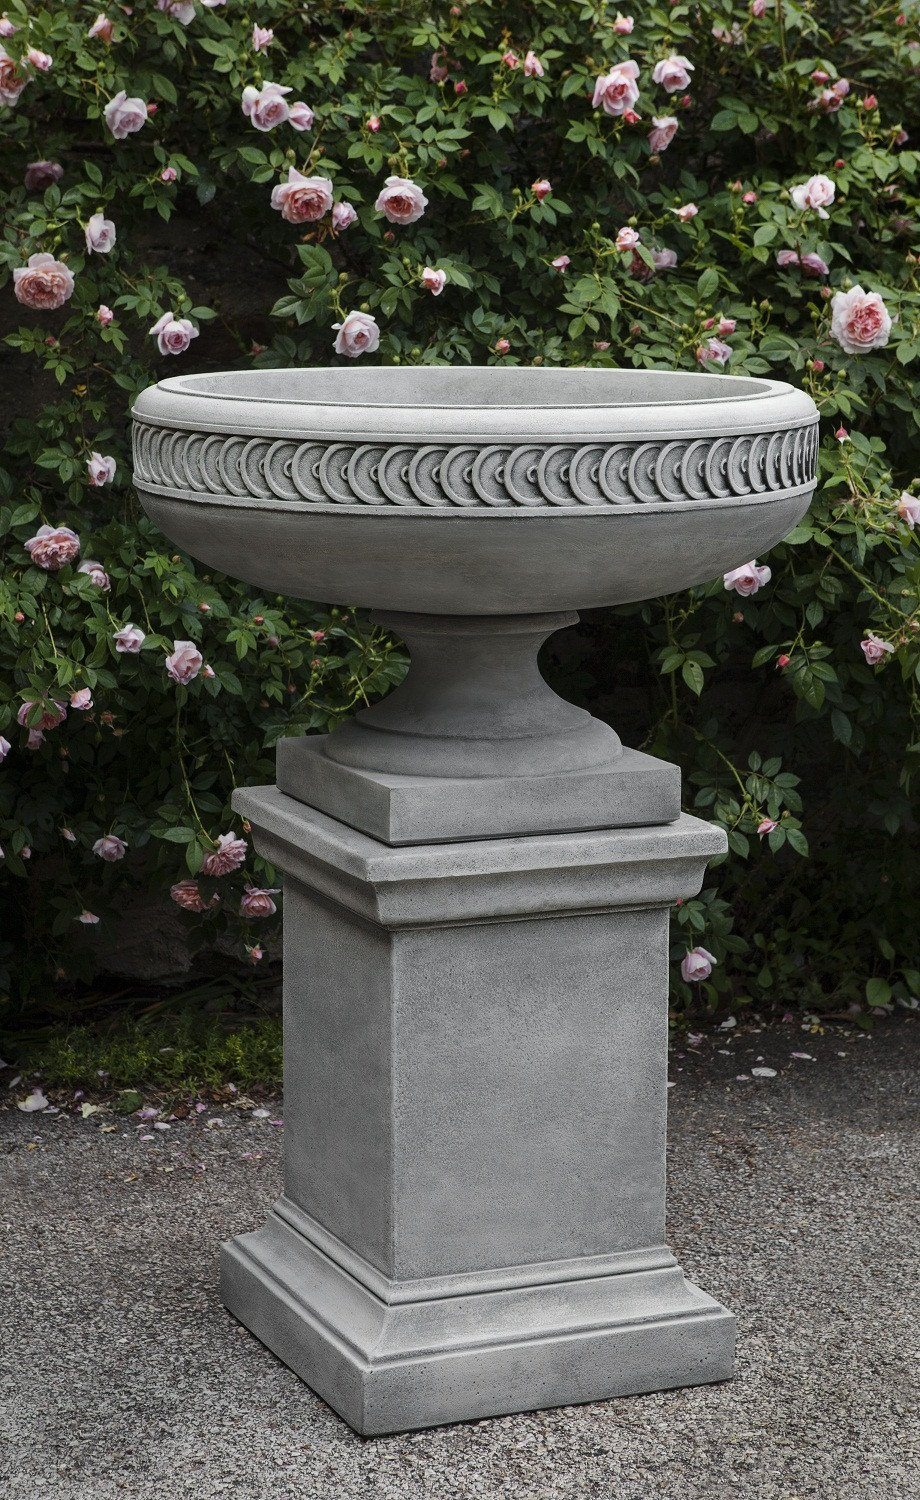 Campania International Cast Stone Chatham Urn w/ Greenwich Pedestal Urn/Planter Campania International